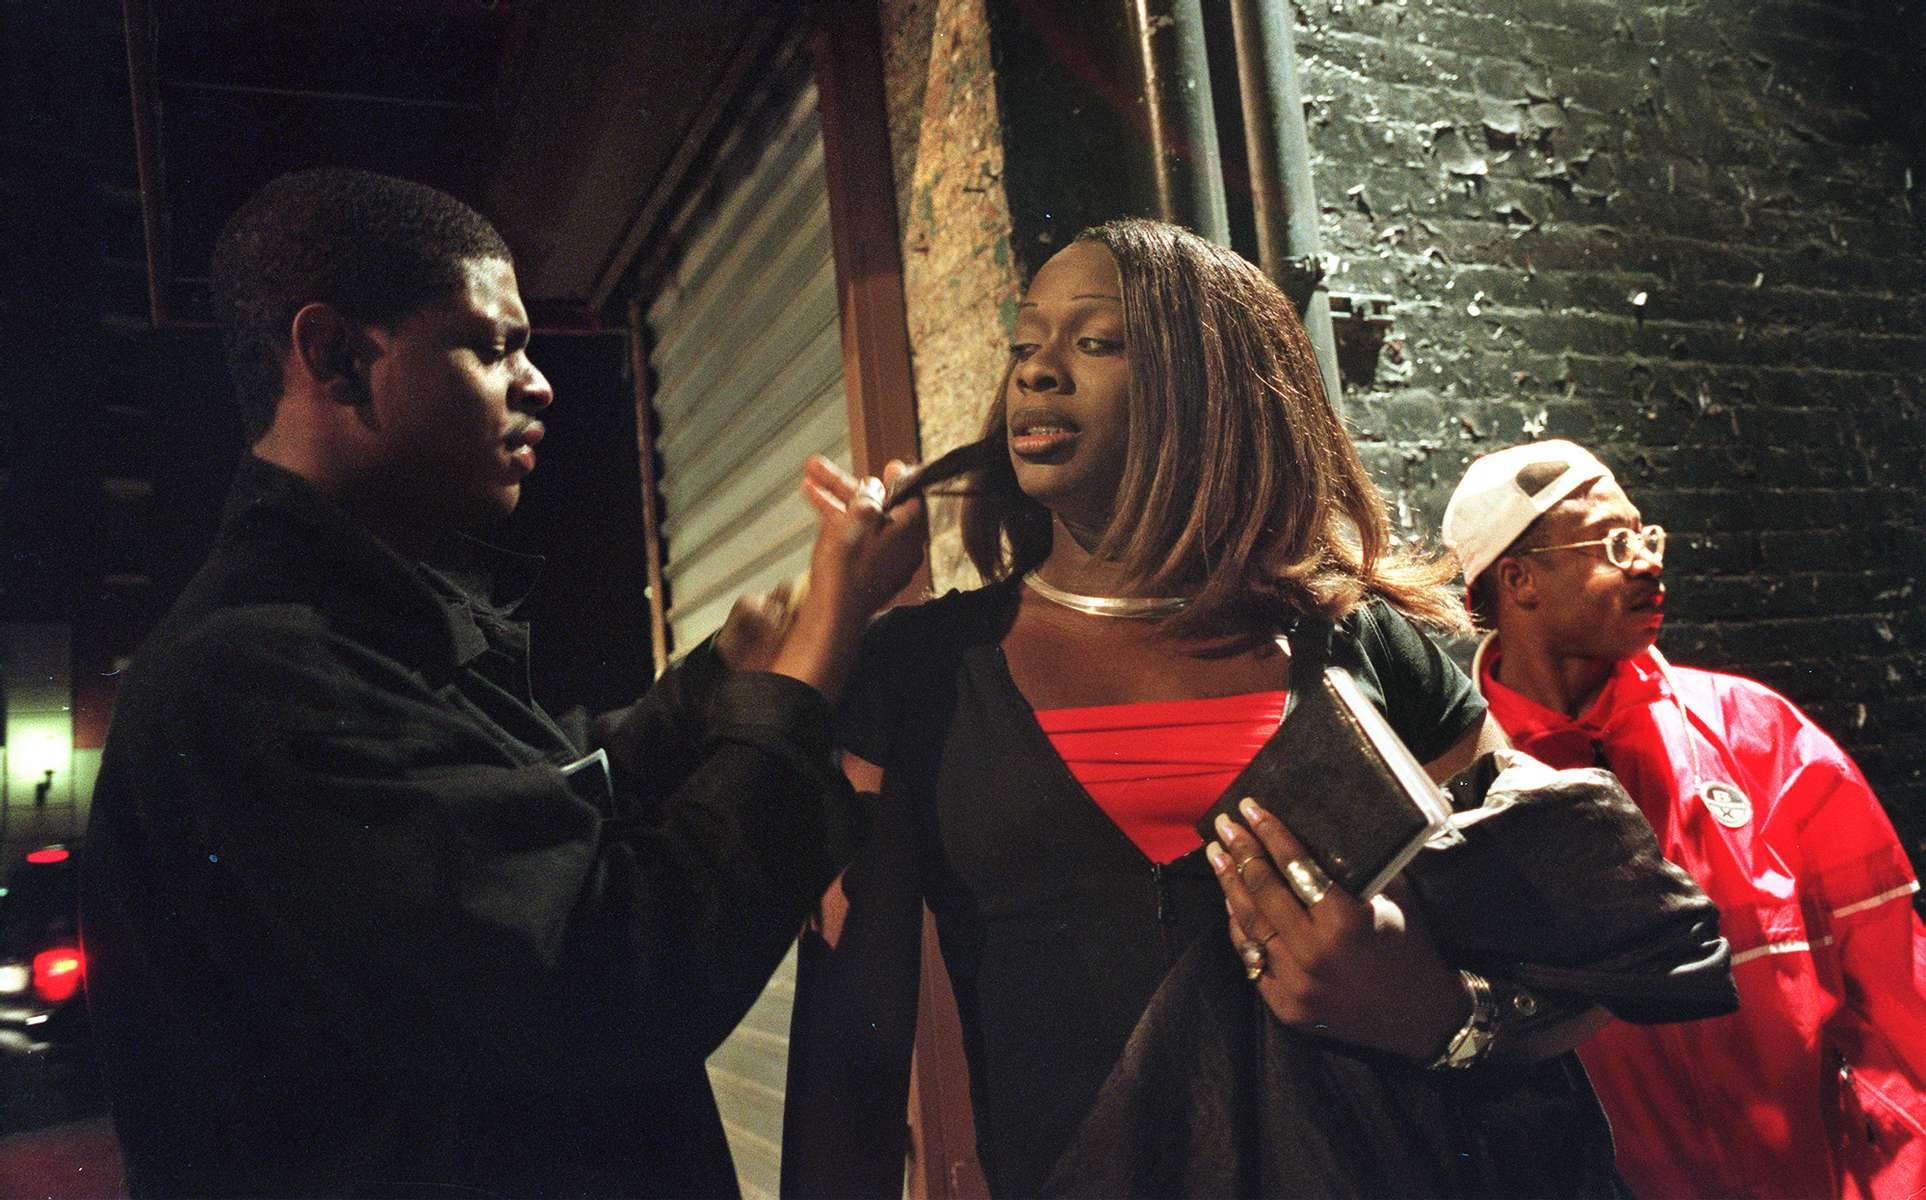 Aurora's friend brushes her hair while her ex-boyfriend, Muhammed watches for cops, right, as she pauses between clients in the West Village on Saturday, May 16, 1999.